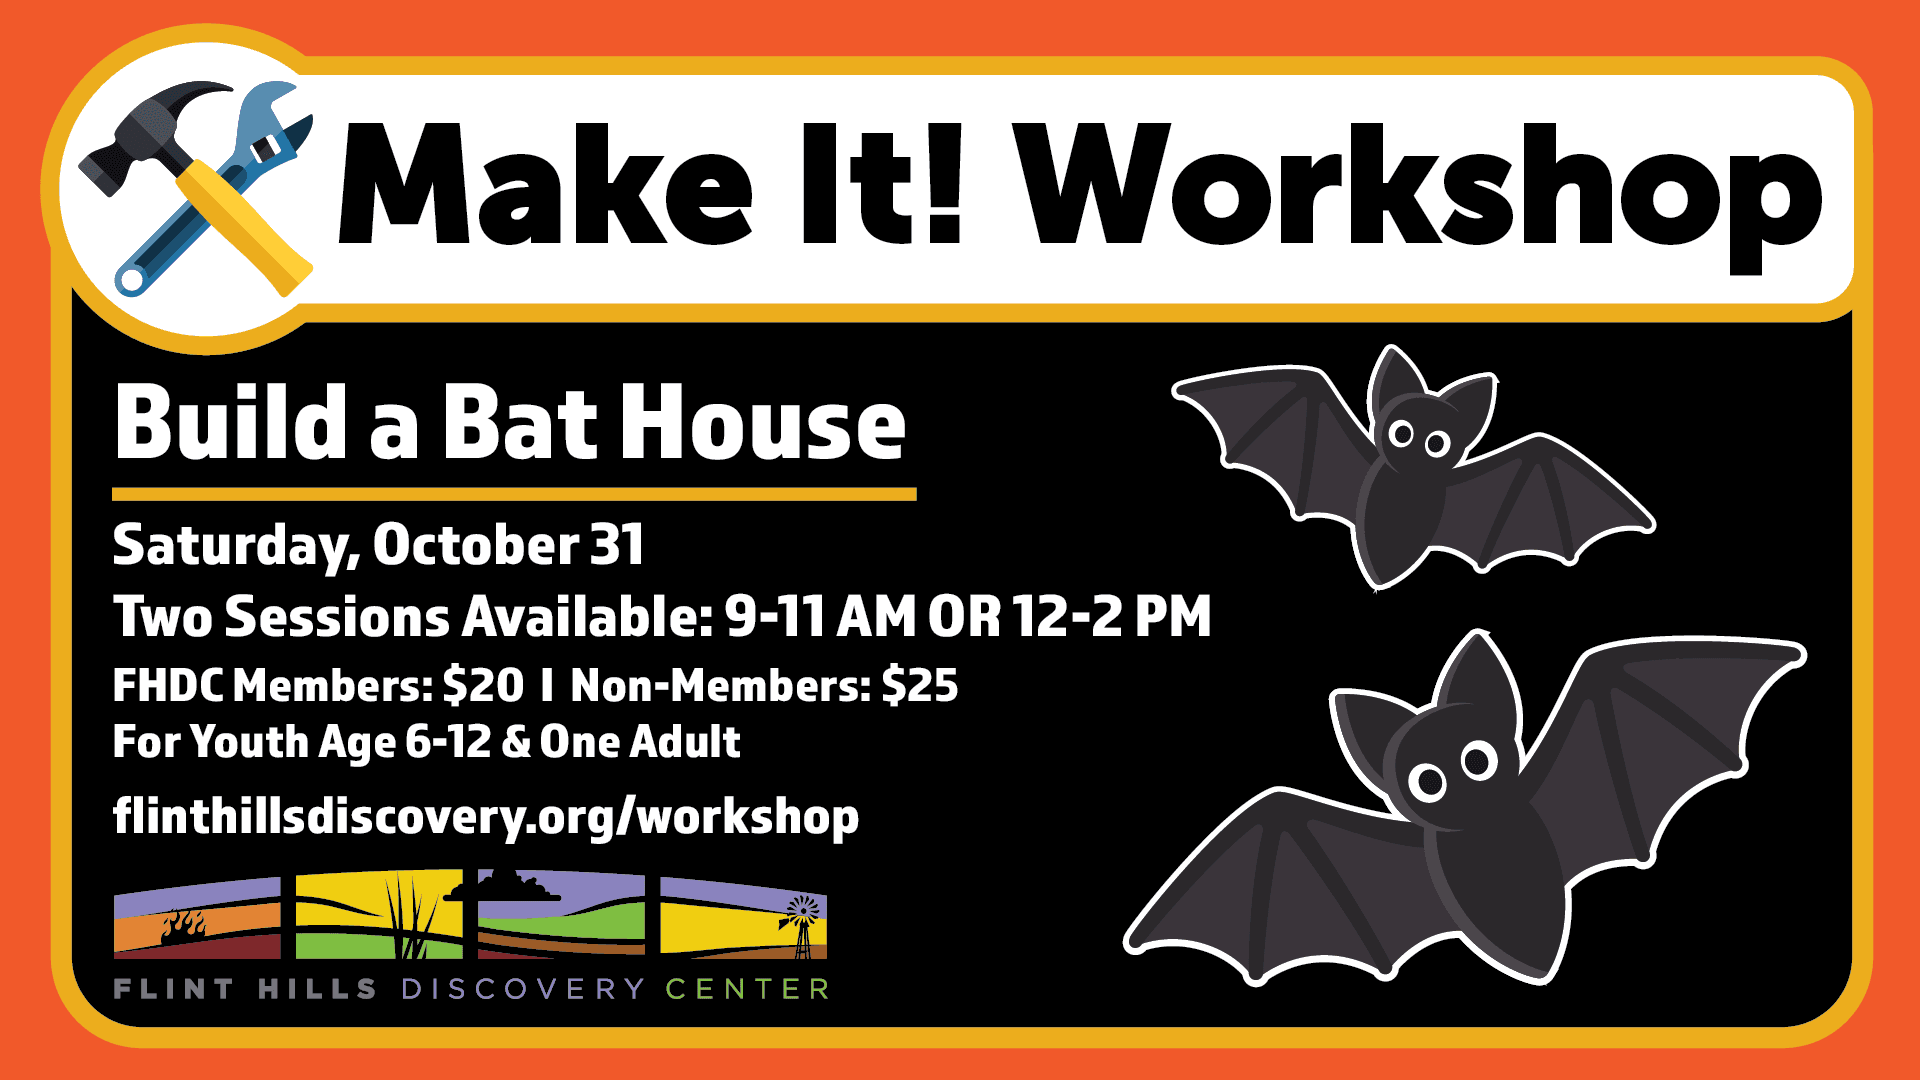 Build a Bat House